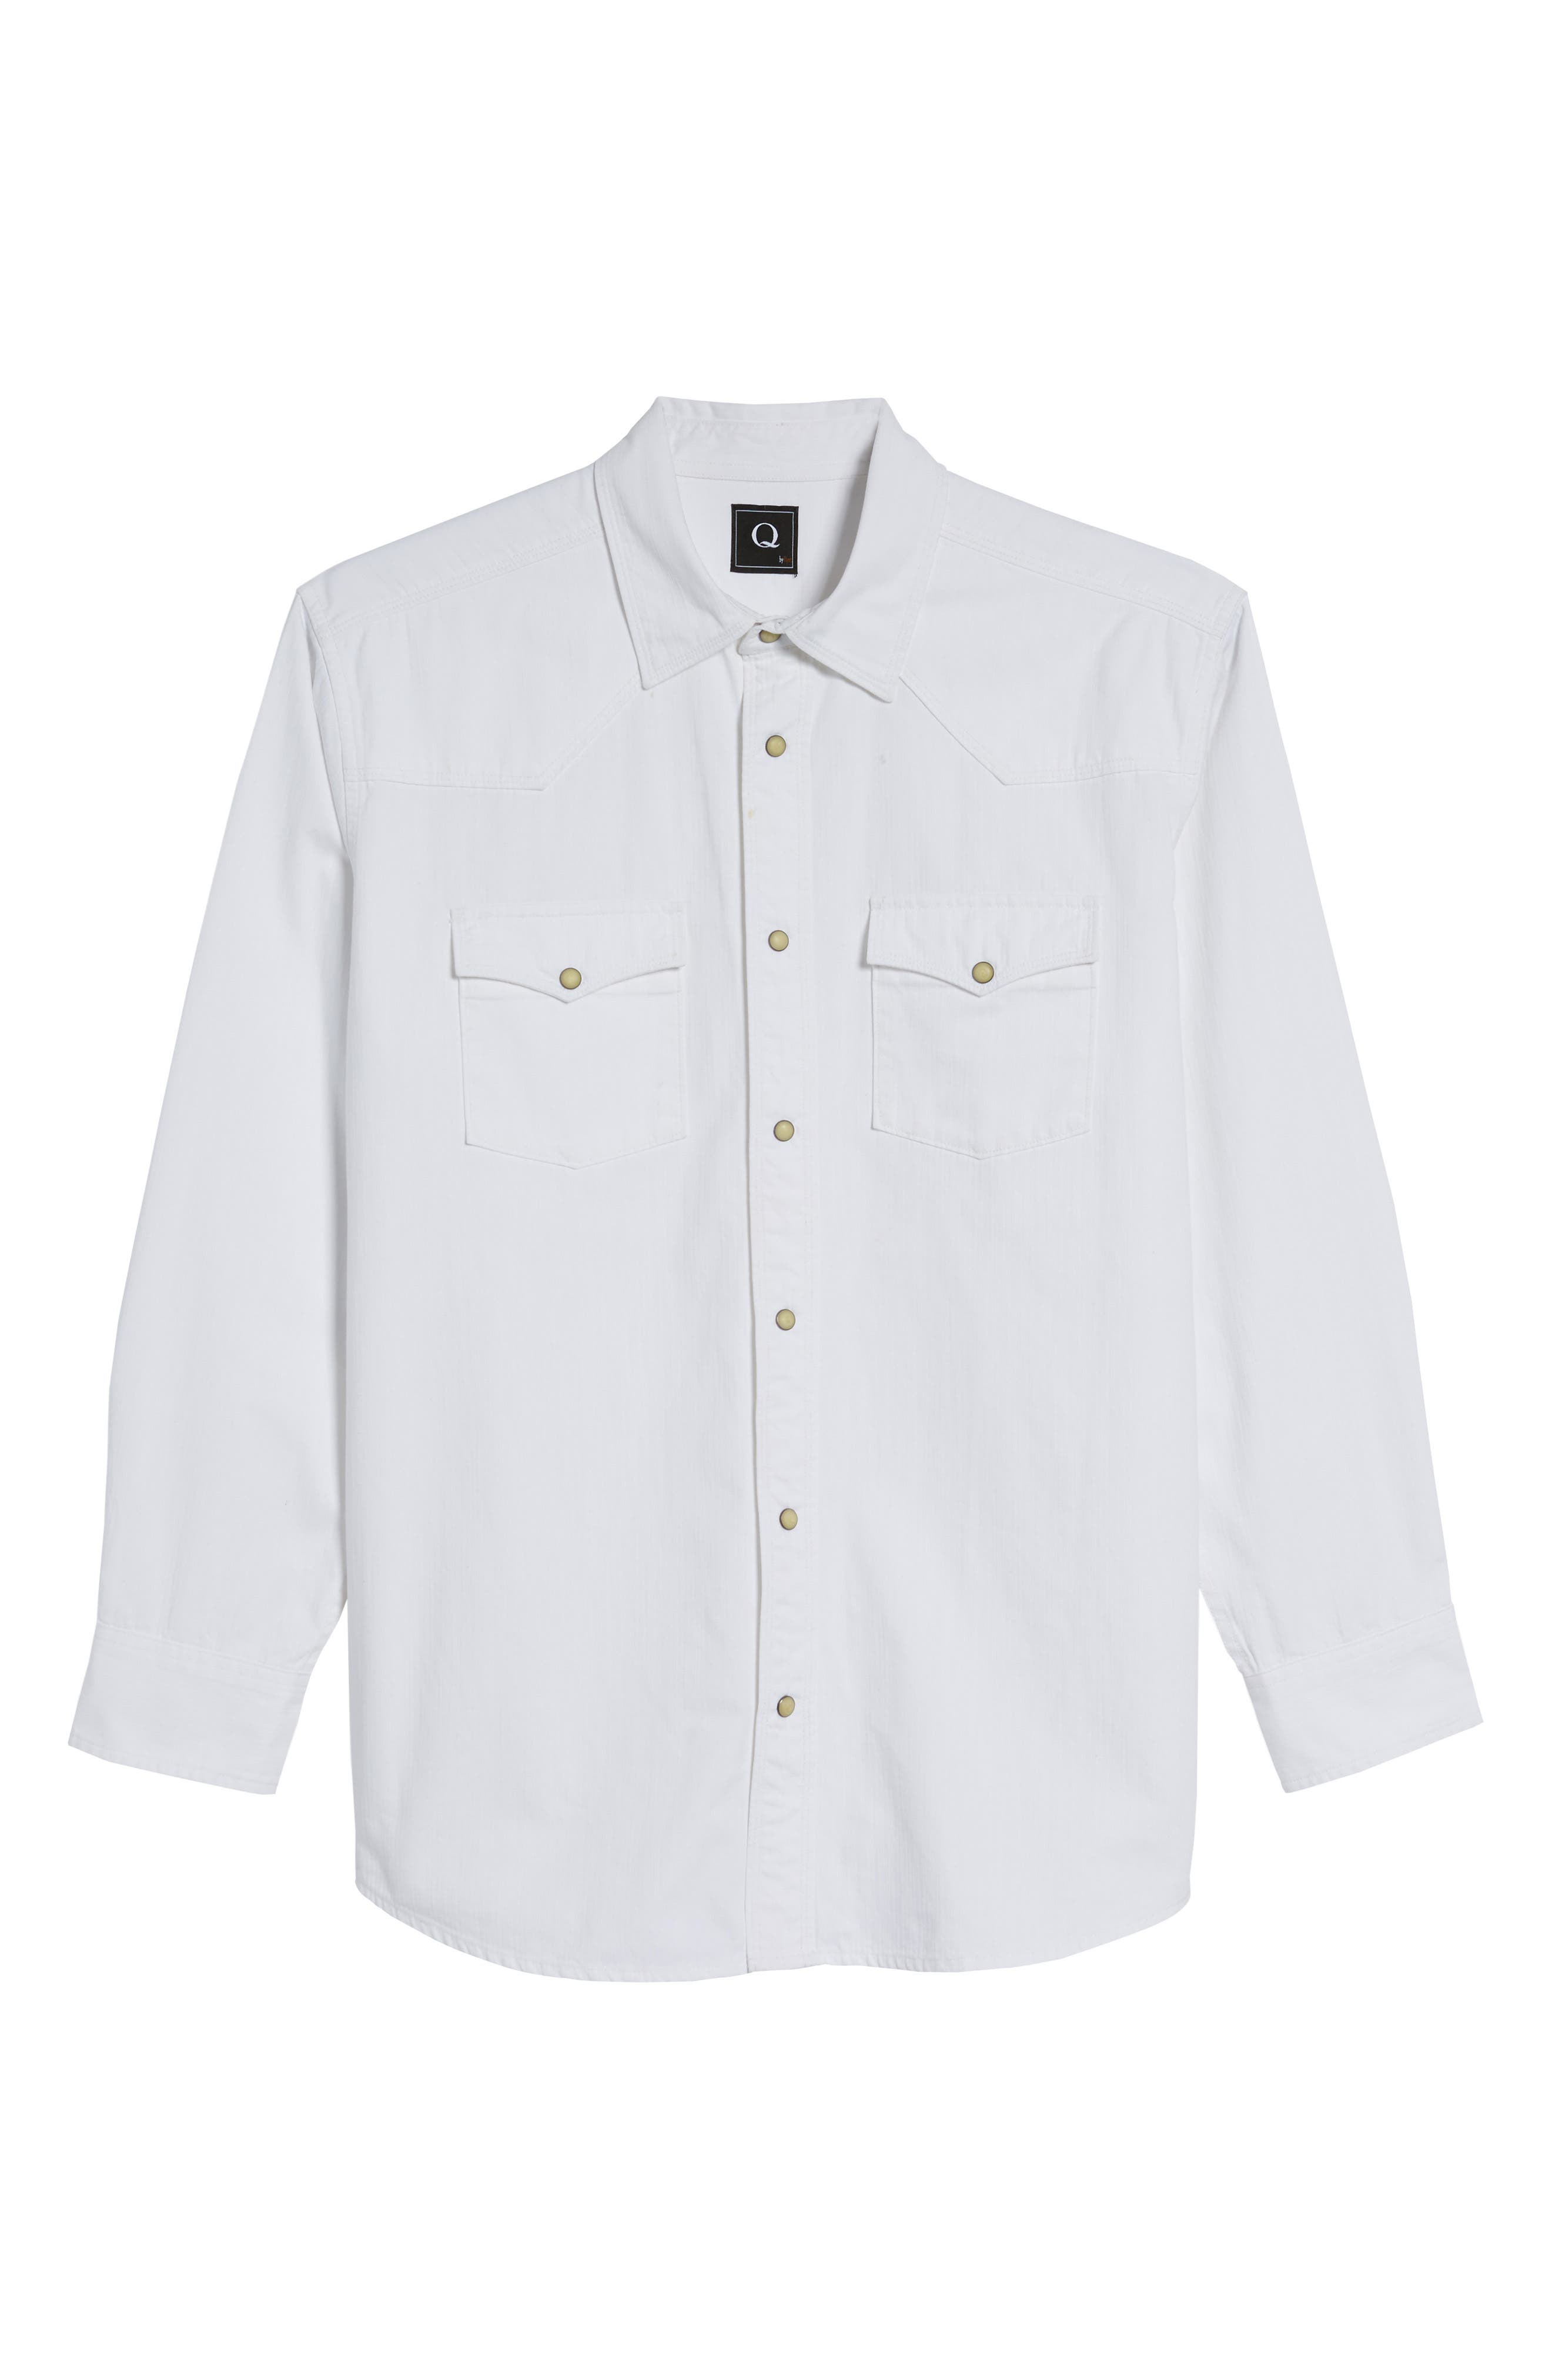 Regular Fit Denim Western Shirt,                             Alternate thumbnail 6, color,                             100